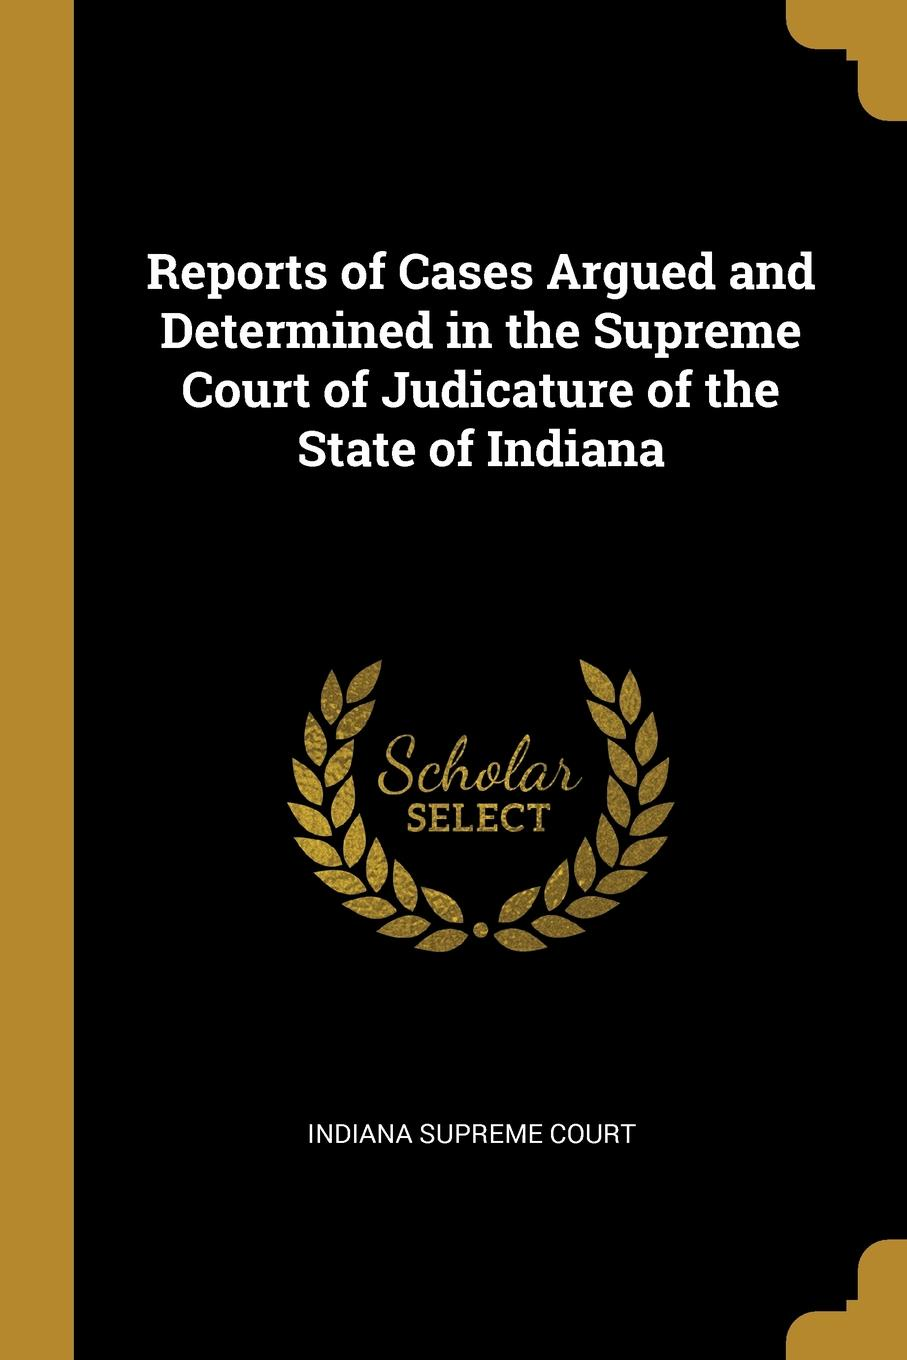 Indiana Supreme Court Reports of Cases Argued and Determined in the Supreme Court of Judicature of the State of Indiana